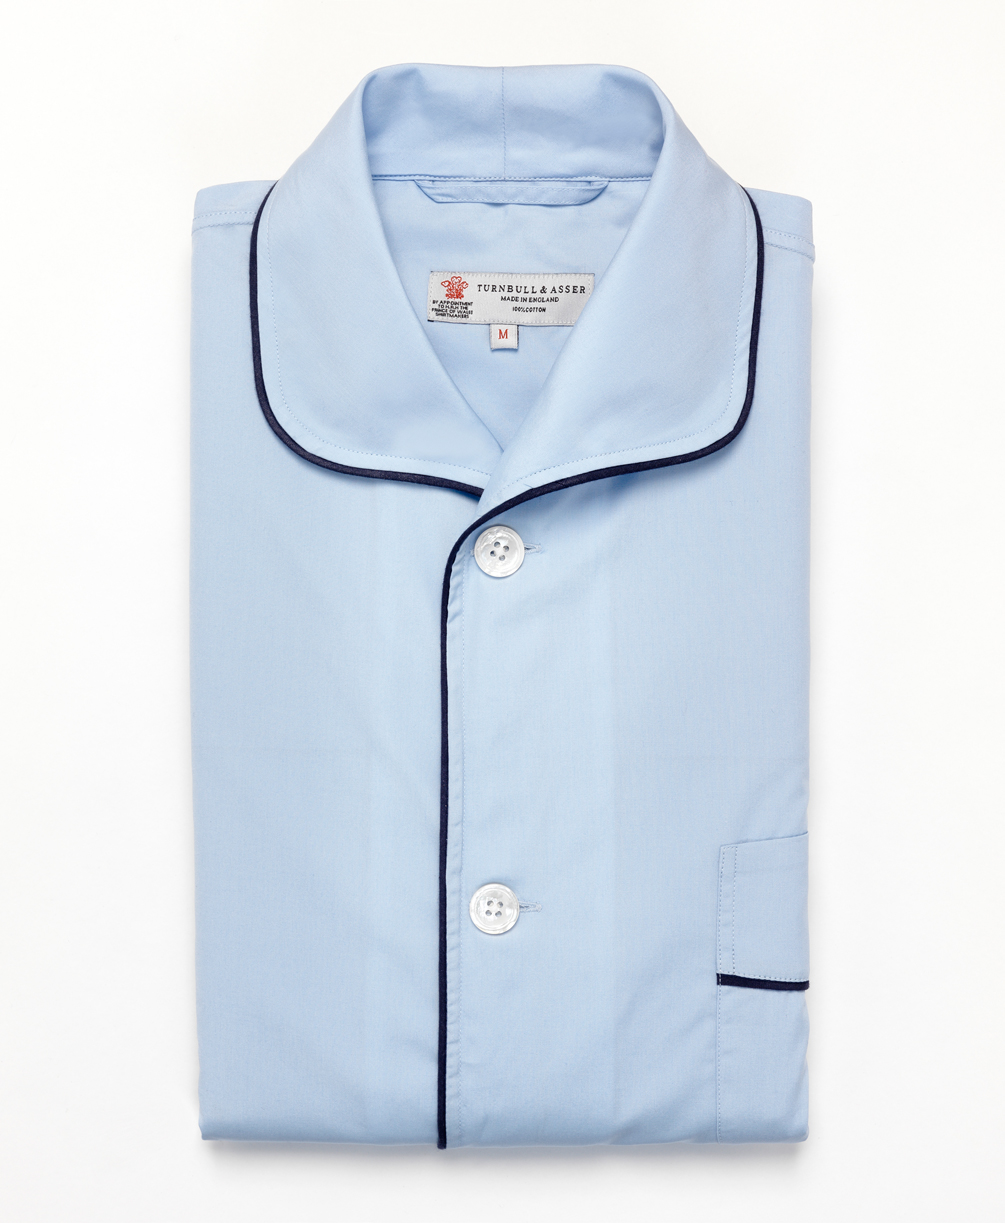 Cotton Pyjamas by Turnbull&Asser